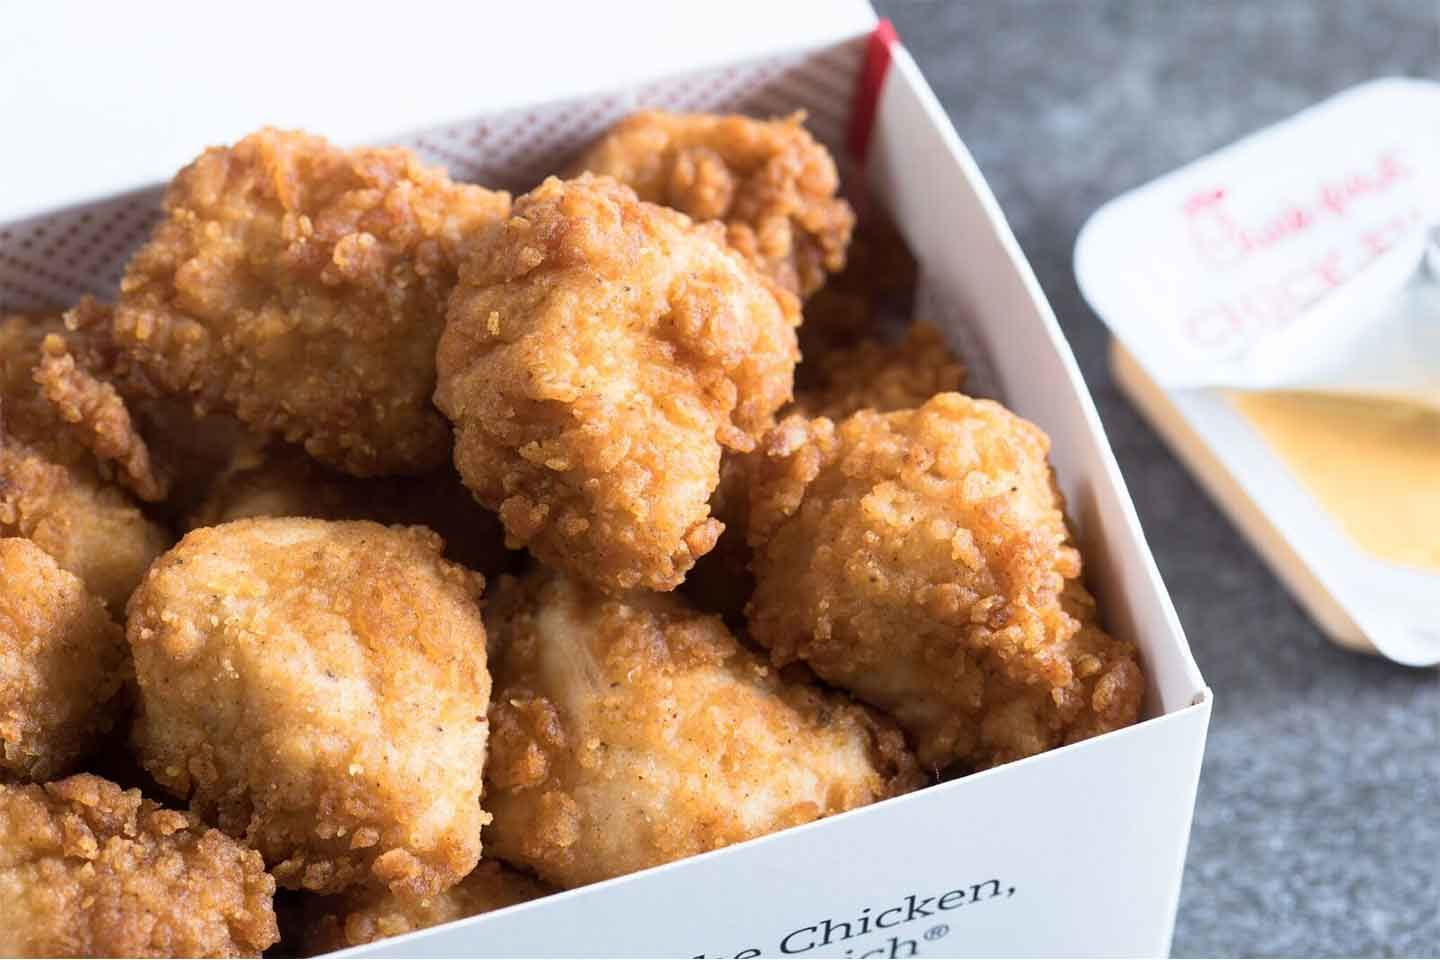 This State Eats the Most Chick-fil-A Chicken Nuggets